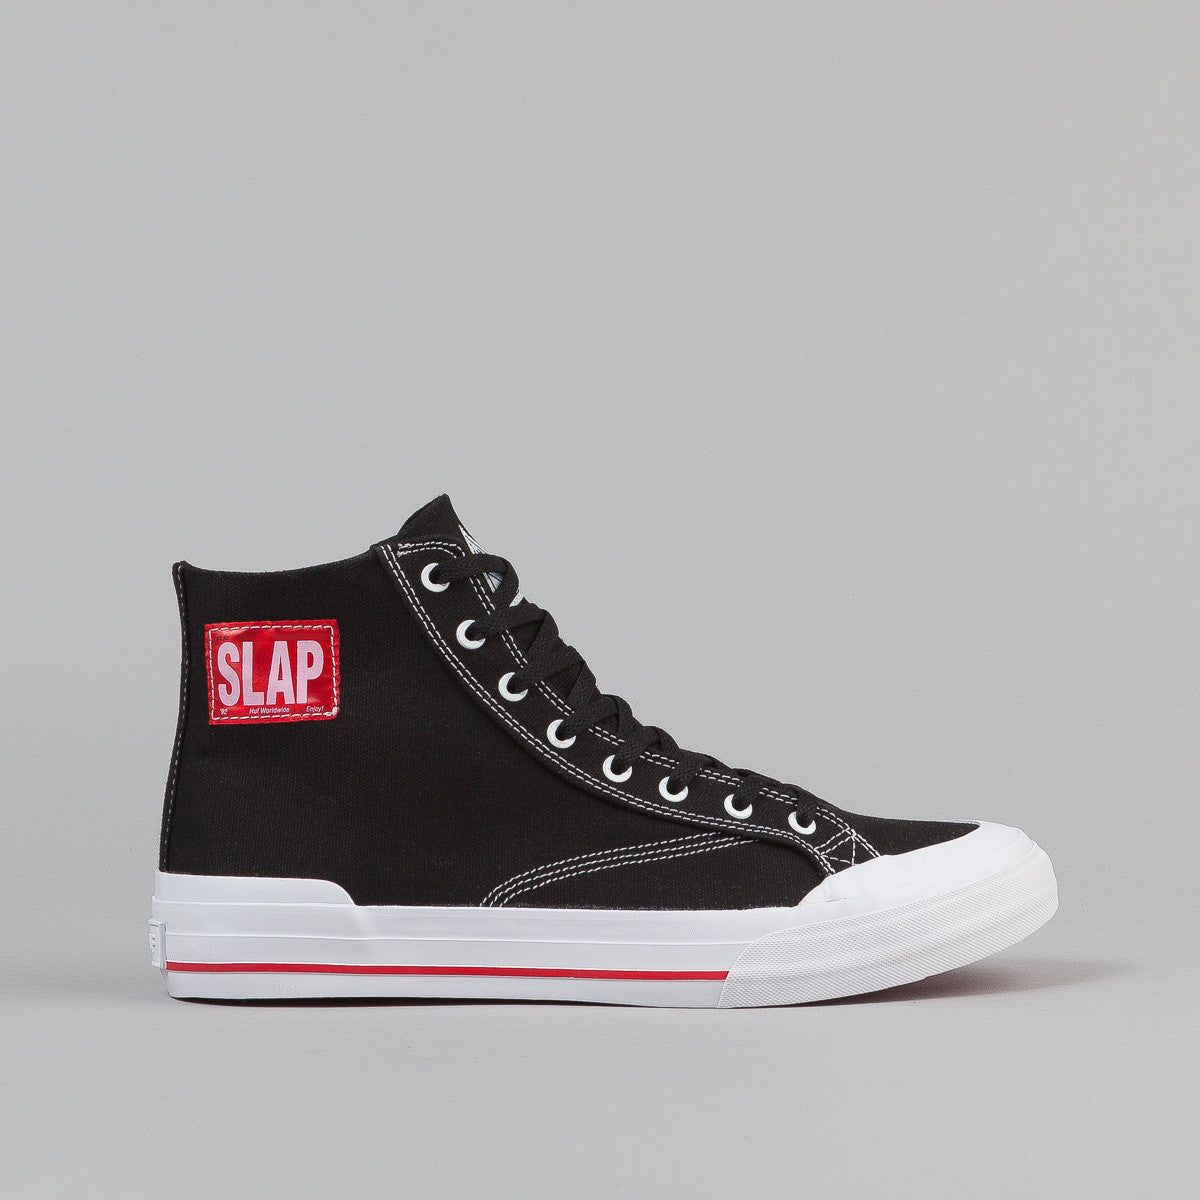 Huf x Slap Classic Hi Shoes